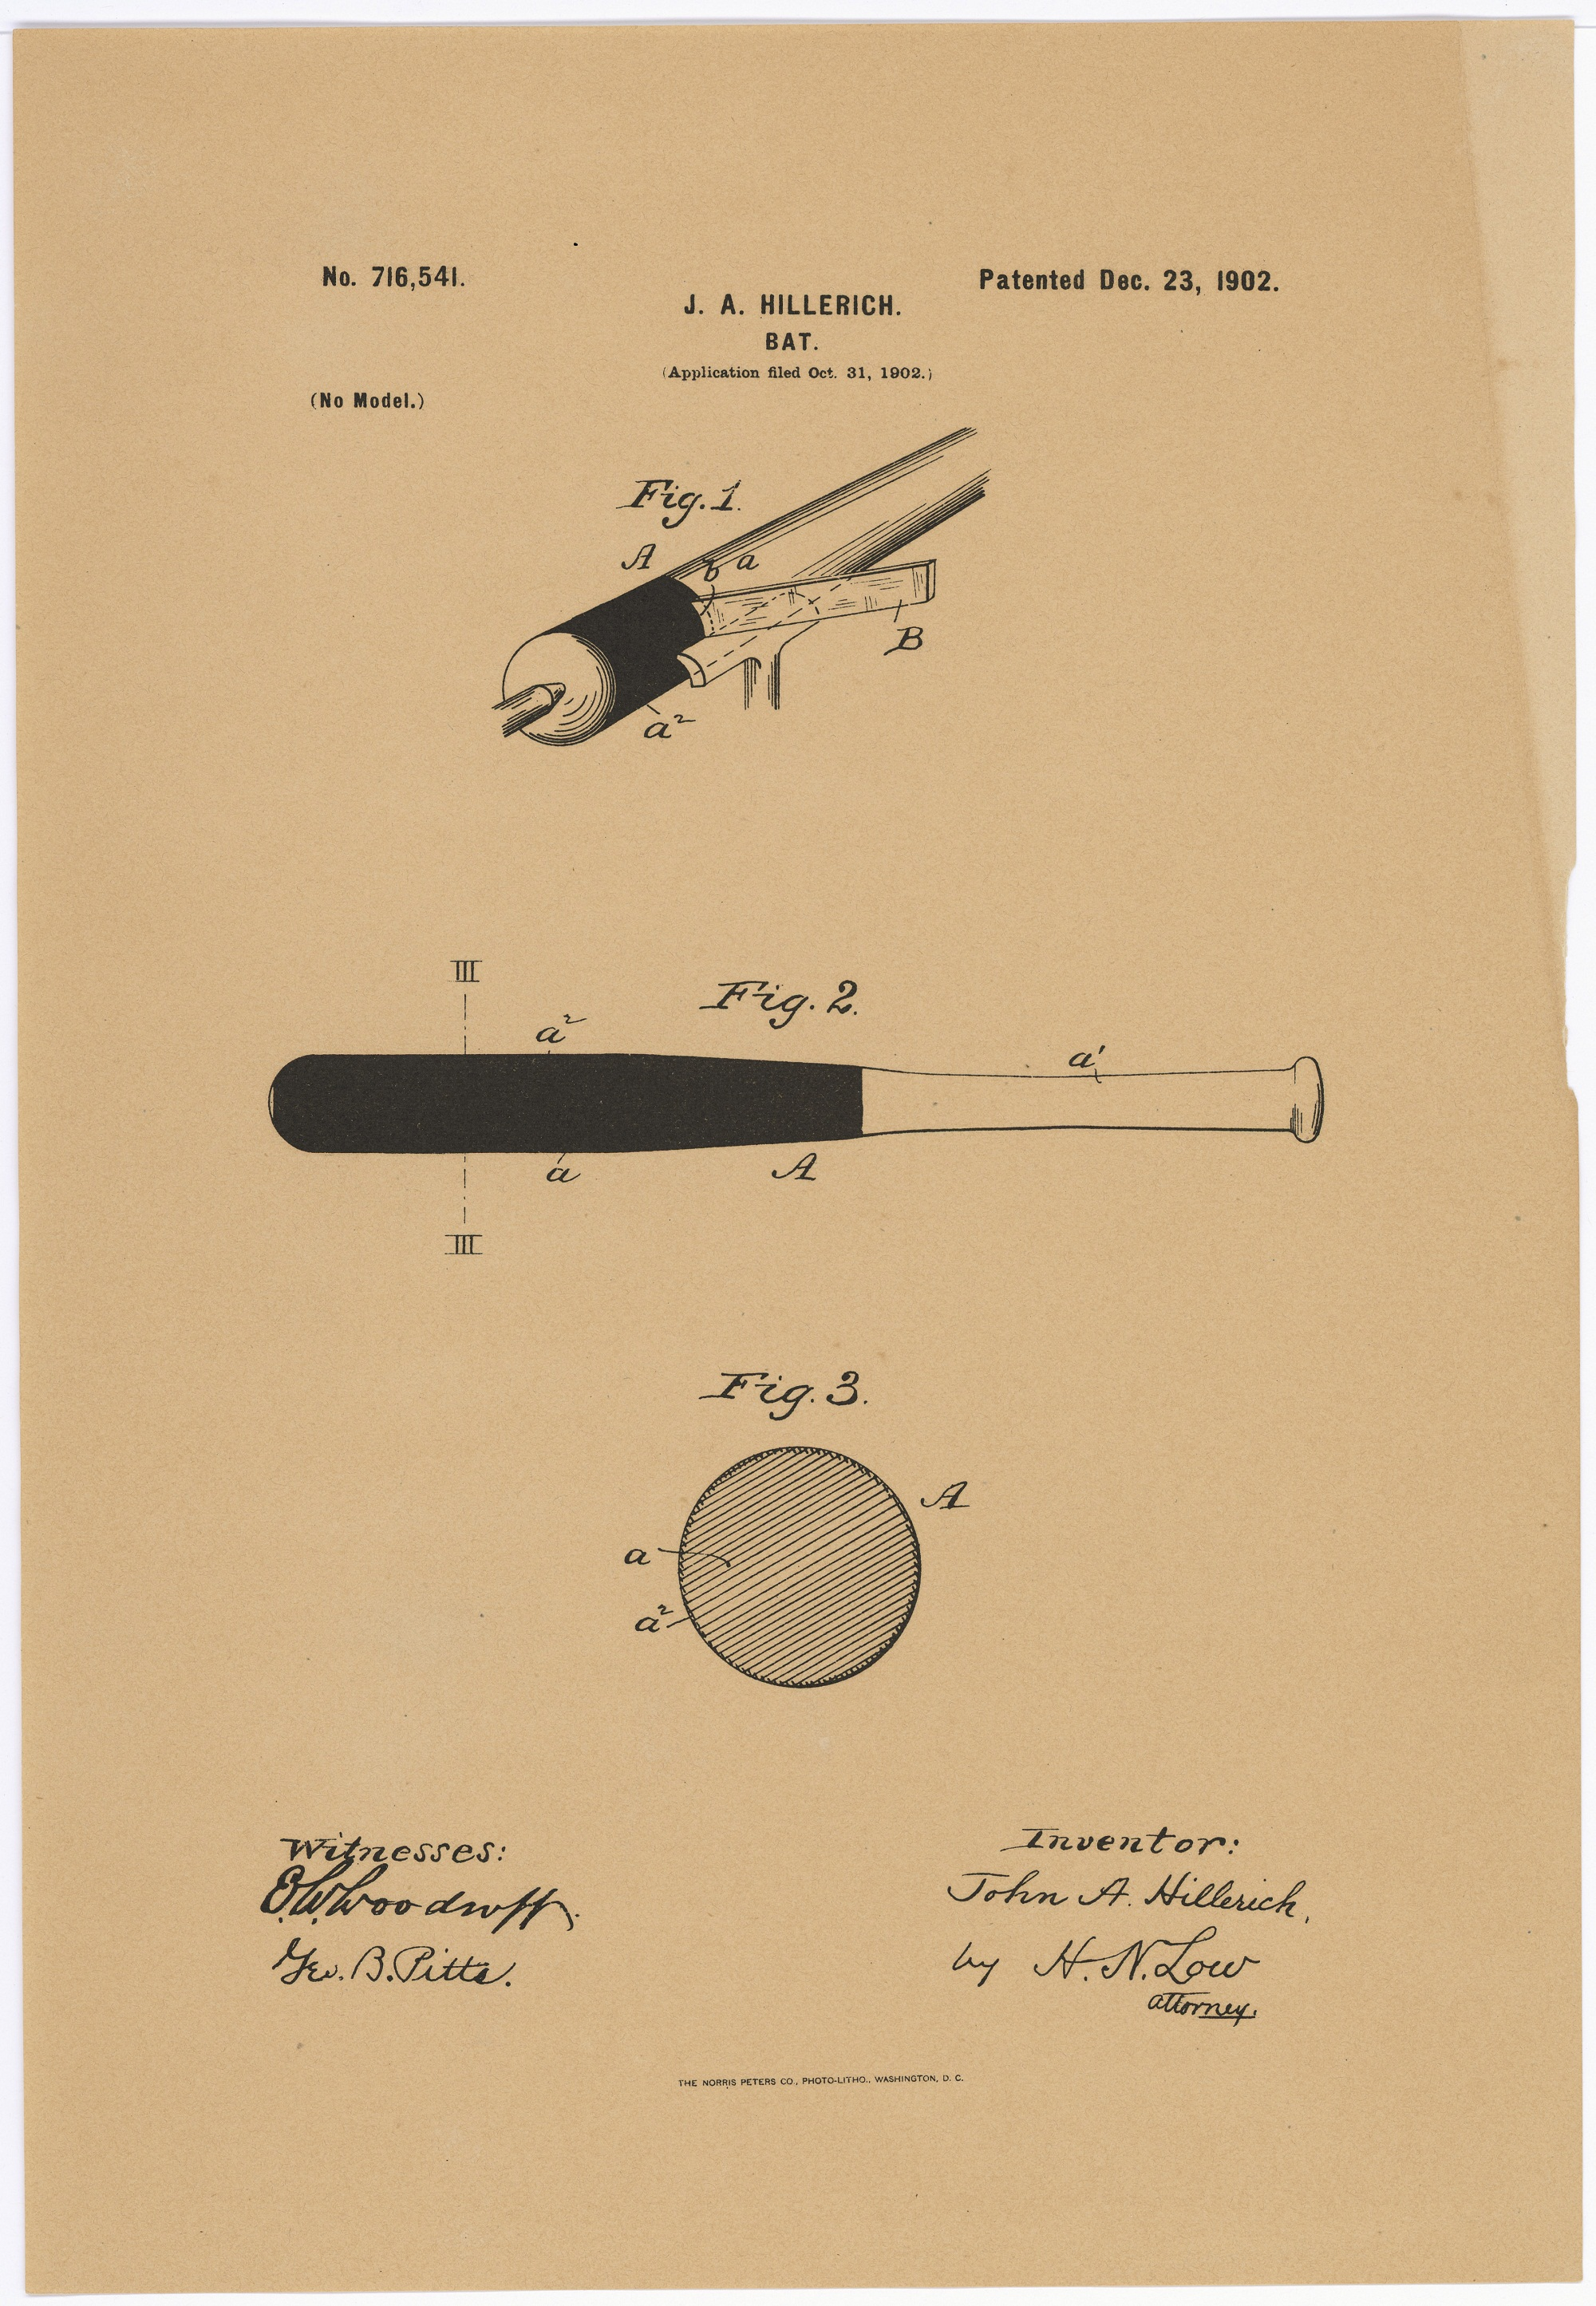 Patent for improvements in baseball bats (Patent 716,541)